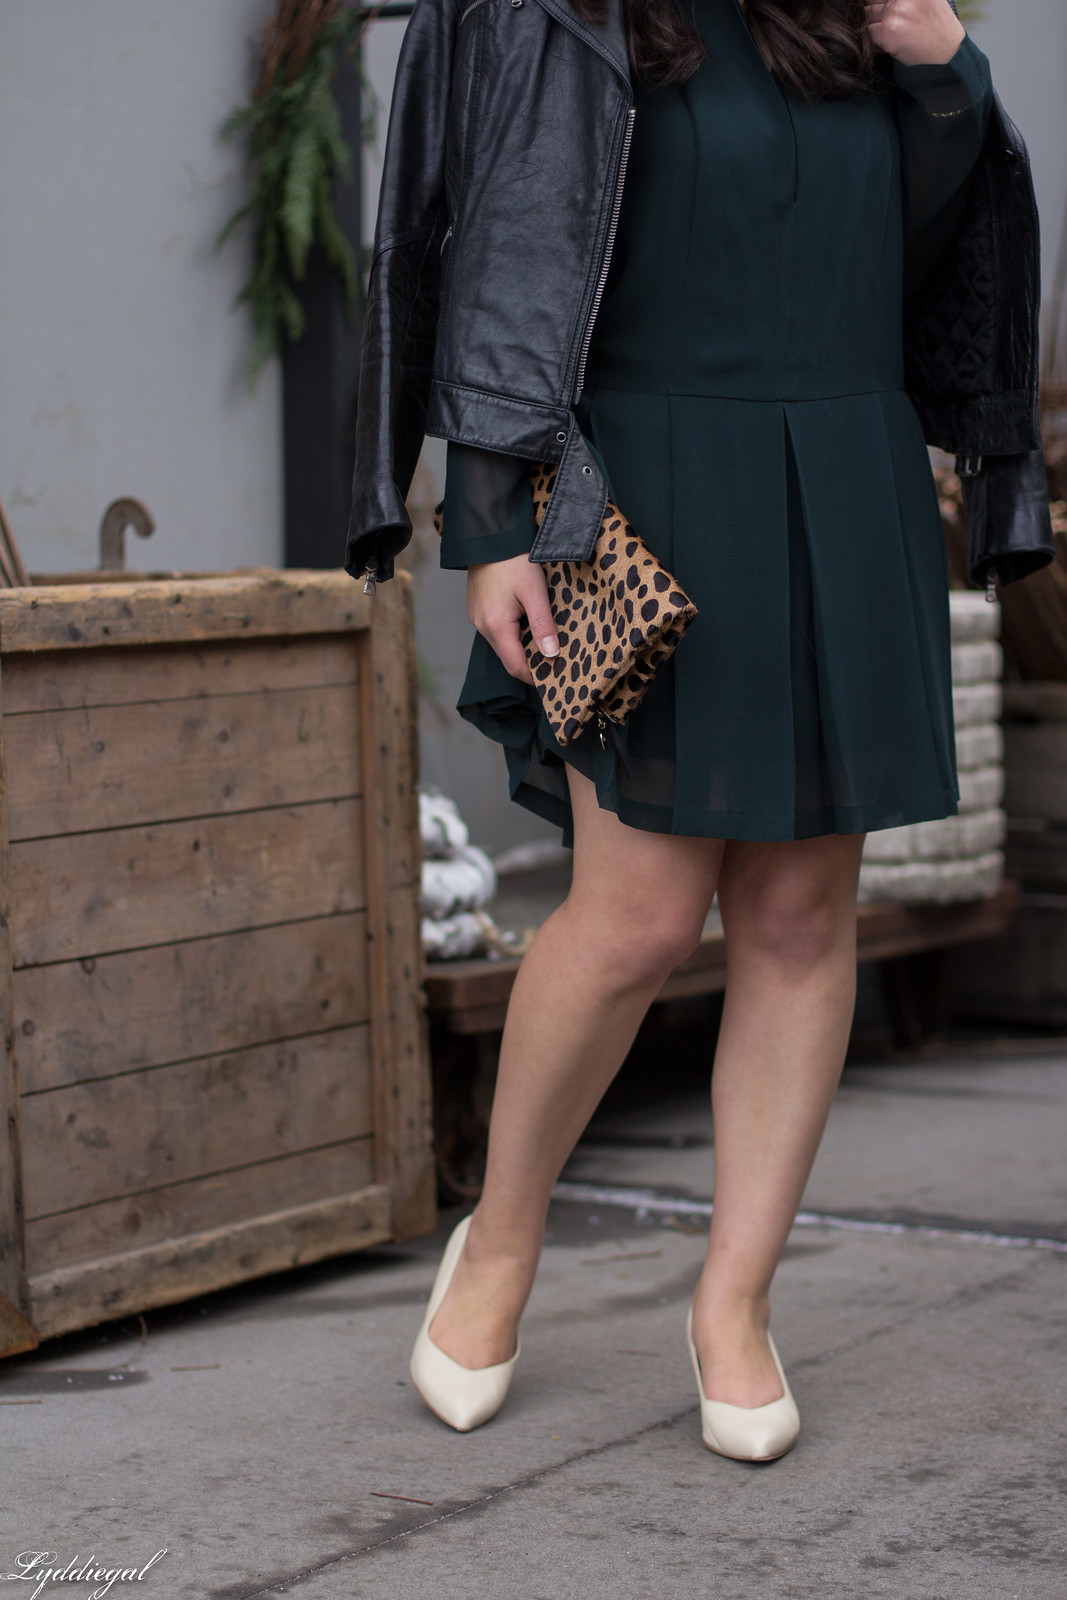 green tory burch dress, leather jacket, SAS moxie pumps, leopard clutch-21.jpg